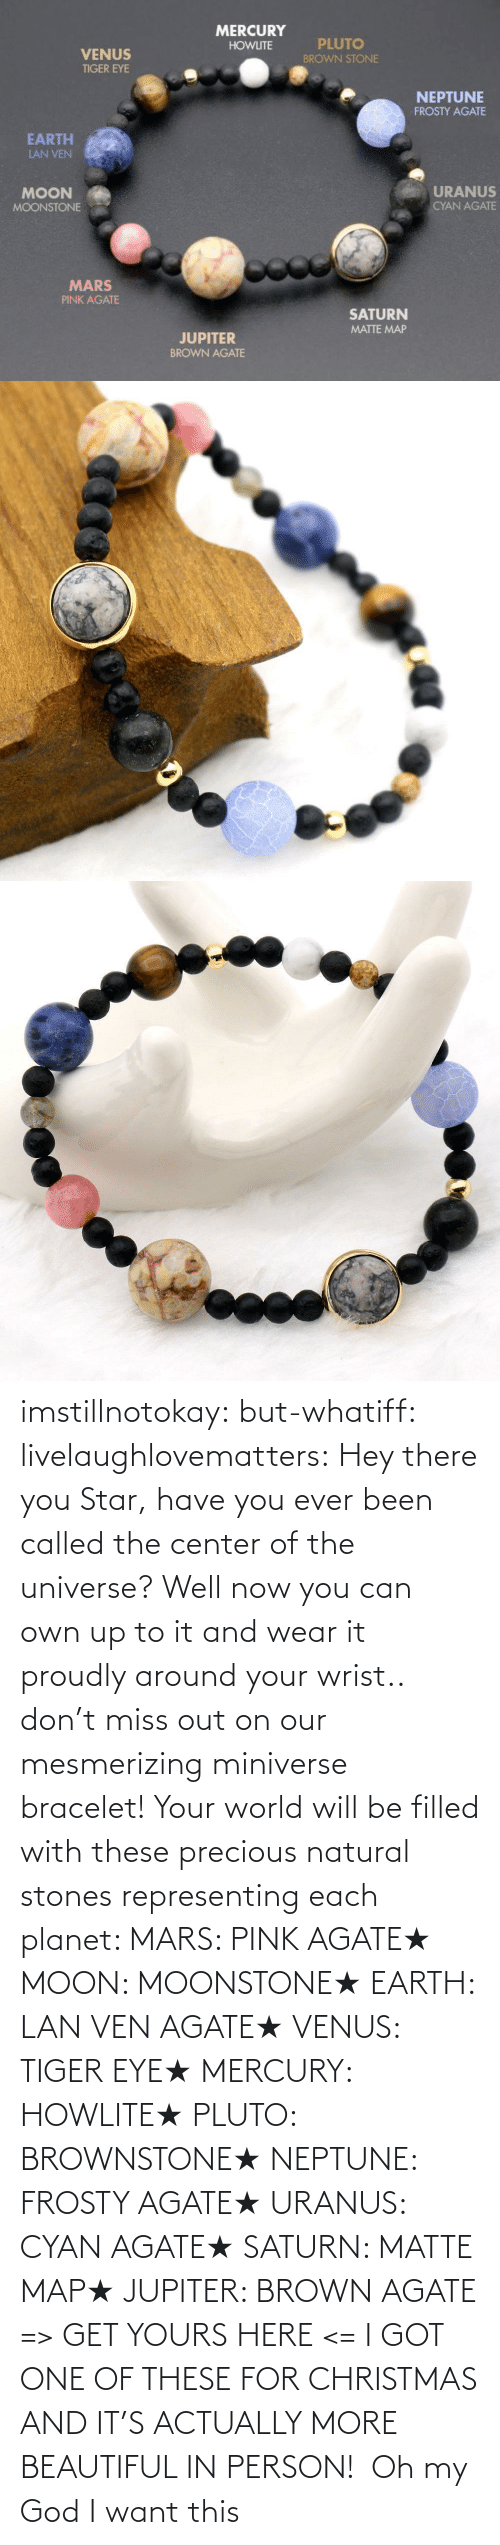 there: imstillnotokay:  but-whatiff: livelaughlovematters:  Hey there you Star, have you ever been called the center of the universe? Well now you can own up to it and wear it proudly around your wrist.. don't miss out on our mesmerizing miniverse bracelet! Your world will be filled with these precious natural stones representing each planet:  MARS: PINK AGATE★ MOON: MOONSTONE★ EARTH: LAN VEN AGATE★ VENUS: TIGER EYE★ MERCURY: HOWLITE★ PLUTO: BROWNSTONE★ NEPTUNE: FROSTY AGATE★ URANUS: CYAN AGATE★ SATURN: MATTE MAP★ JUPITER: BROWN AGATE => GET YOURS HERE <=  I GOT ONE OF THESE FOR CHRISTMAS AND IT'S ACTUALLY MORE BEAUTIFUL IN PERSON!     Oh my God I want this